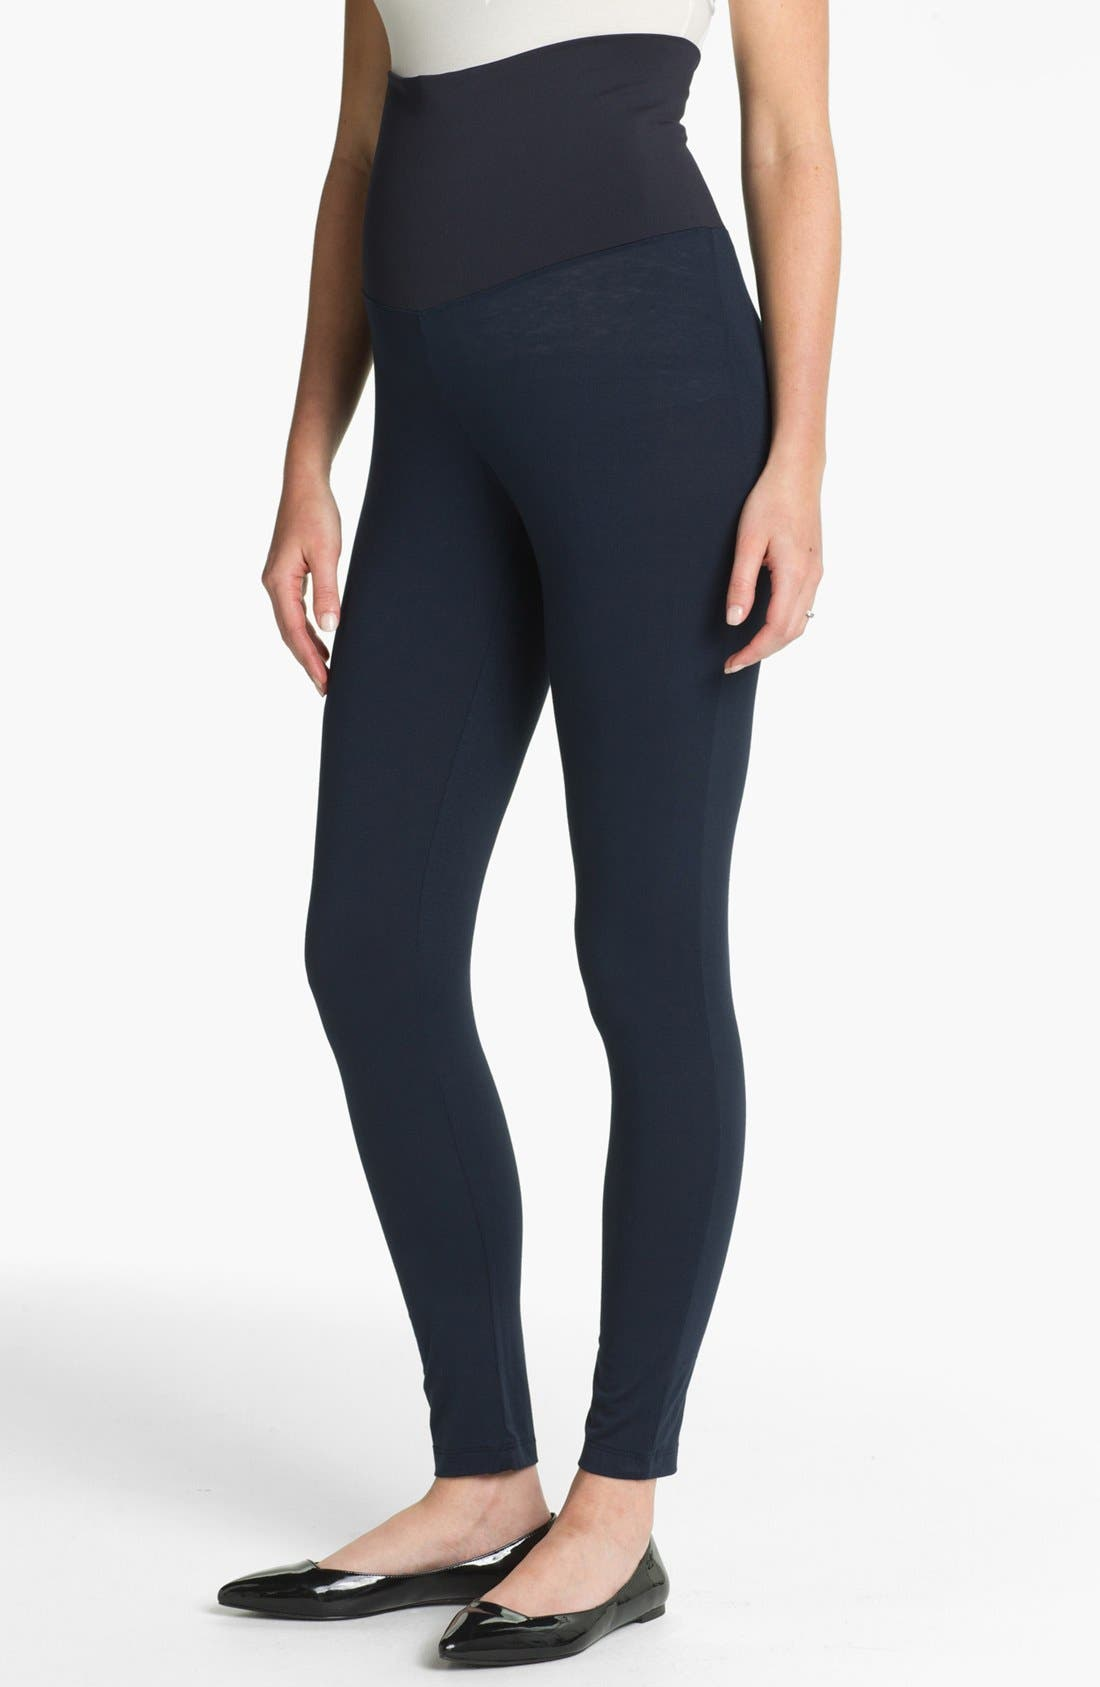 Post Maternity Support Leggings,                         Main,                         color, Navy